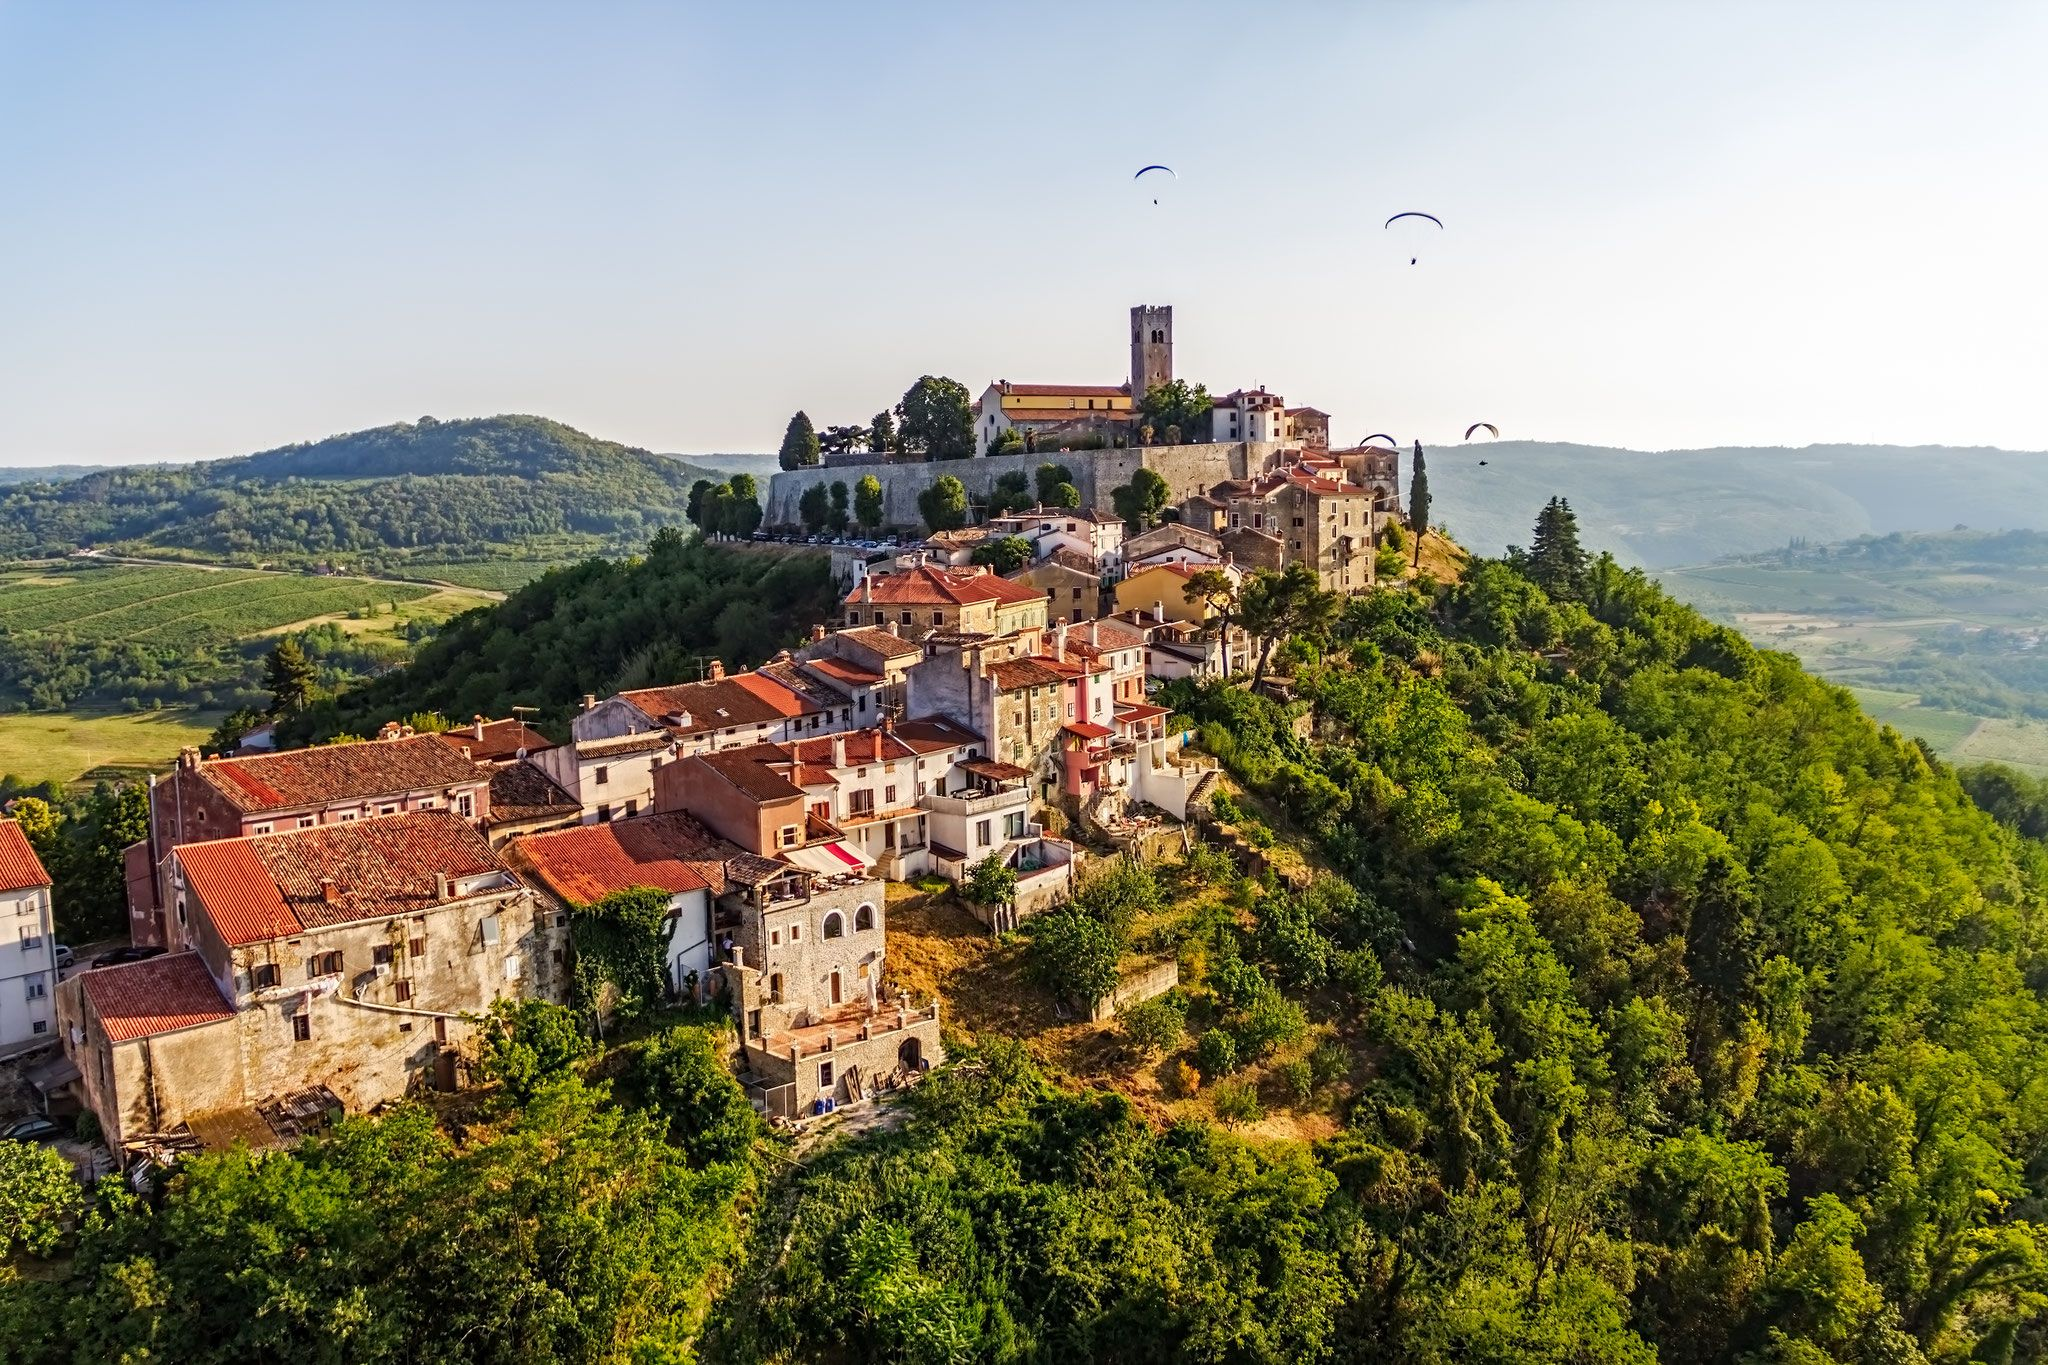 Motovun Is A Small Village In Central Istria Istra Croatia Copyright Opis Zagreb Croatia Tours Croatia Travel Best Honeymoon Destinations